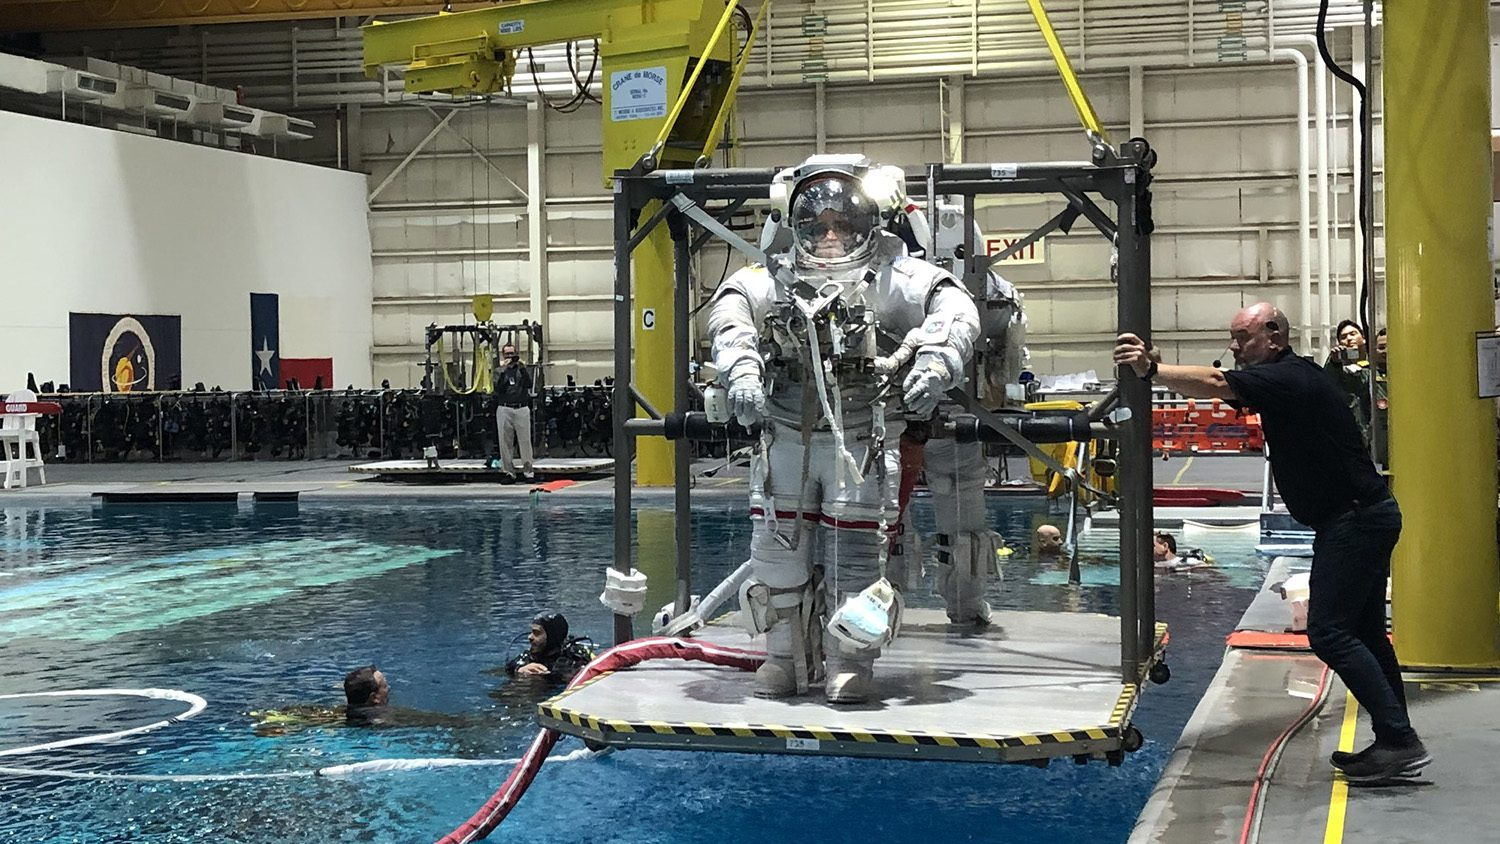 astronaut prepares to go into pool of water